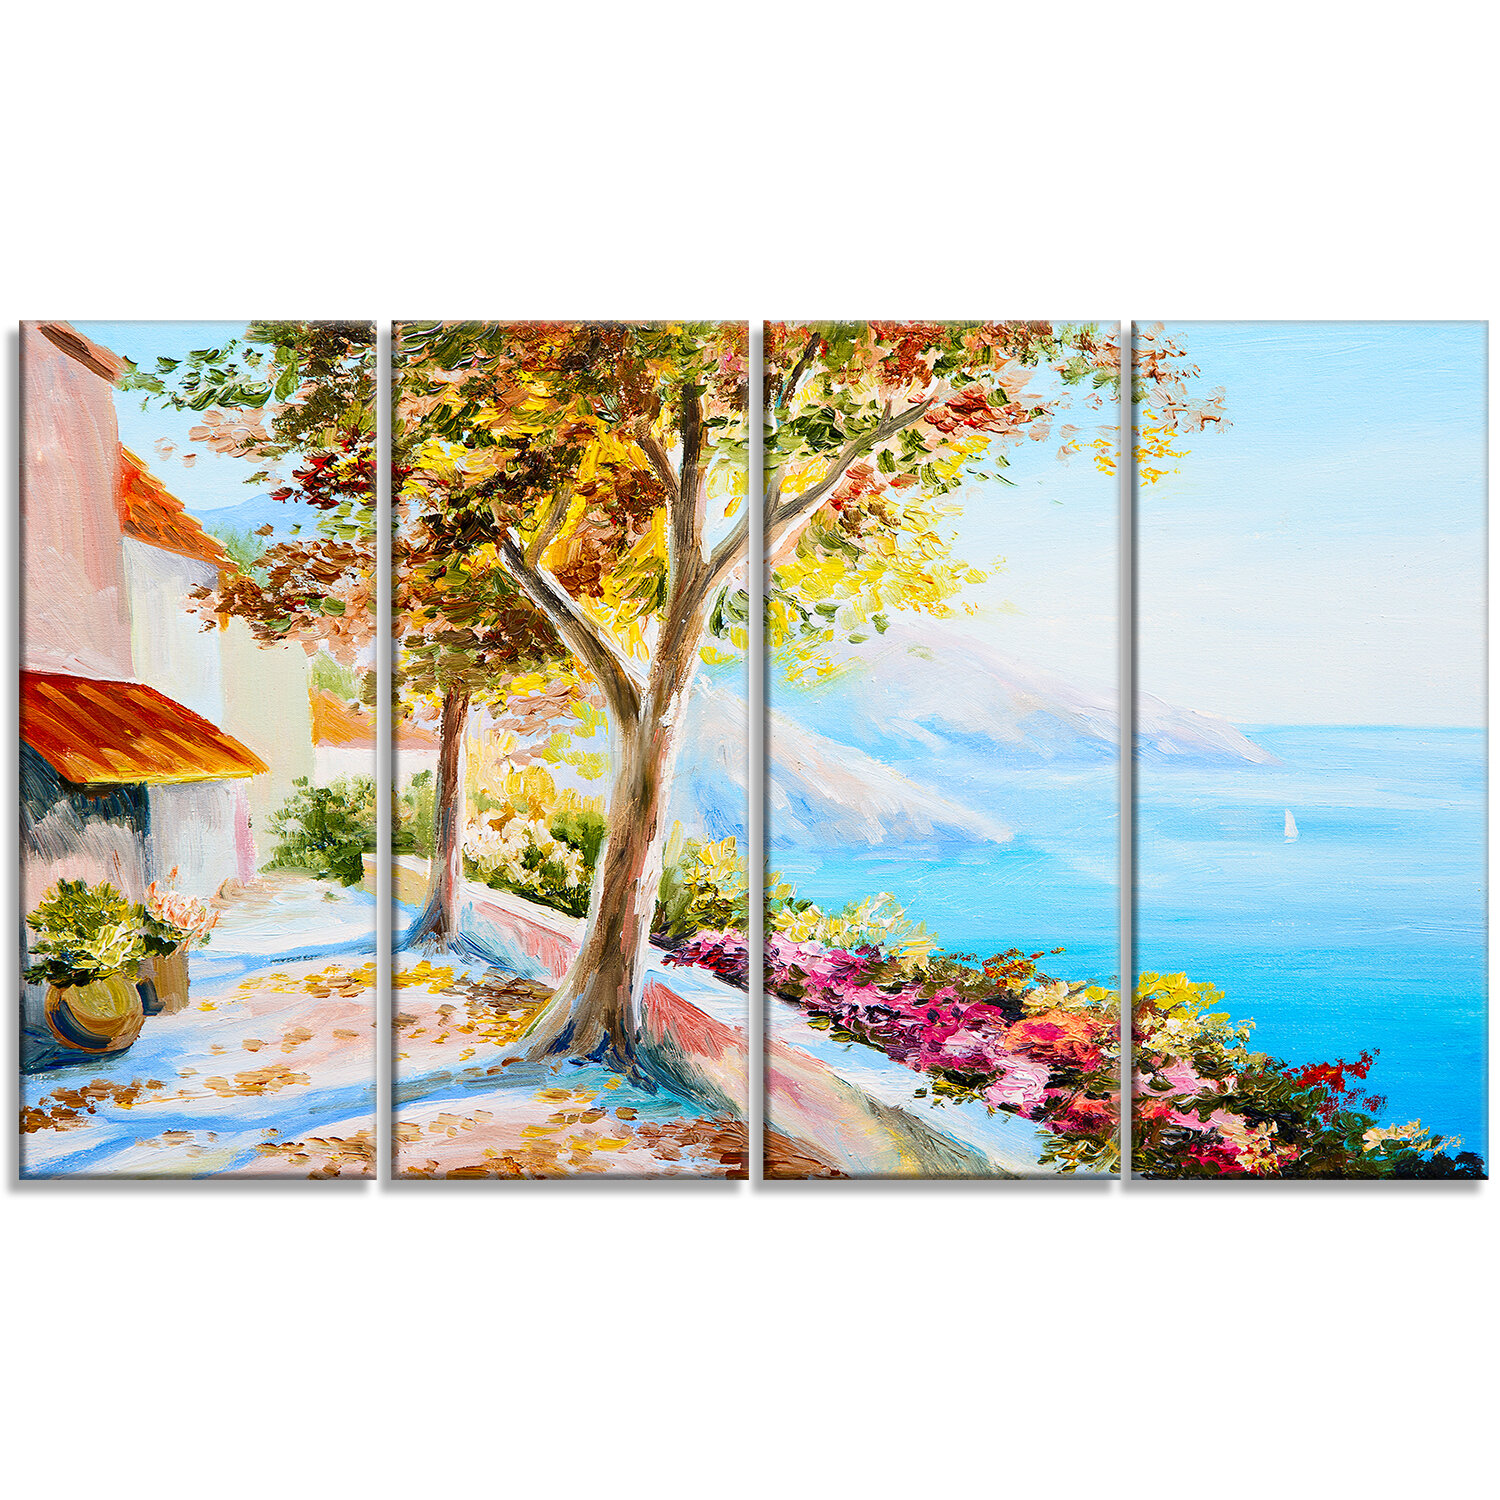 Designart House And Sea In The Fall Landscape 4 Piece Painting Print On Wrapped Canvas Set Wayfair Ca